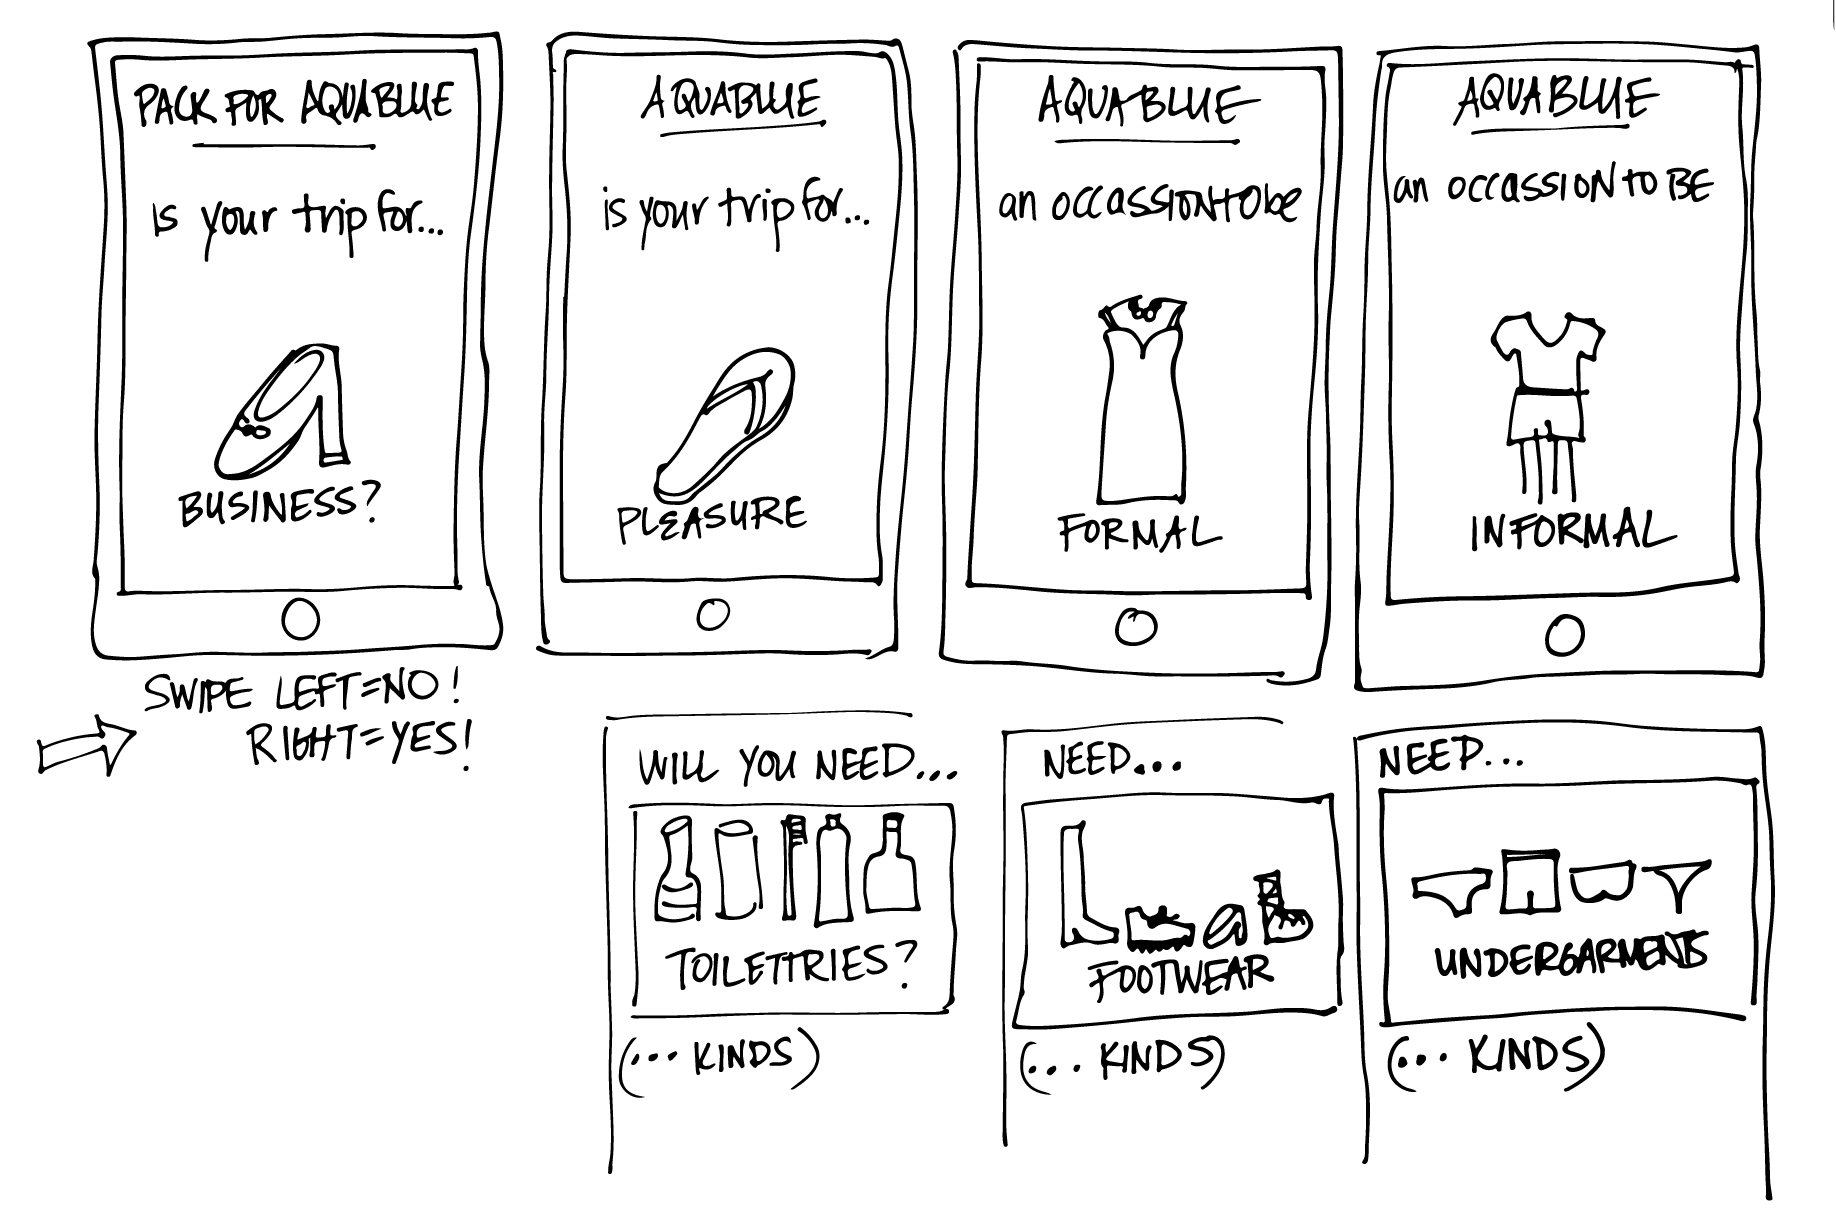 Rough sketch of various screens of experience